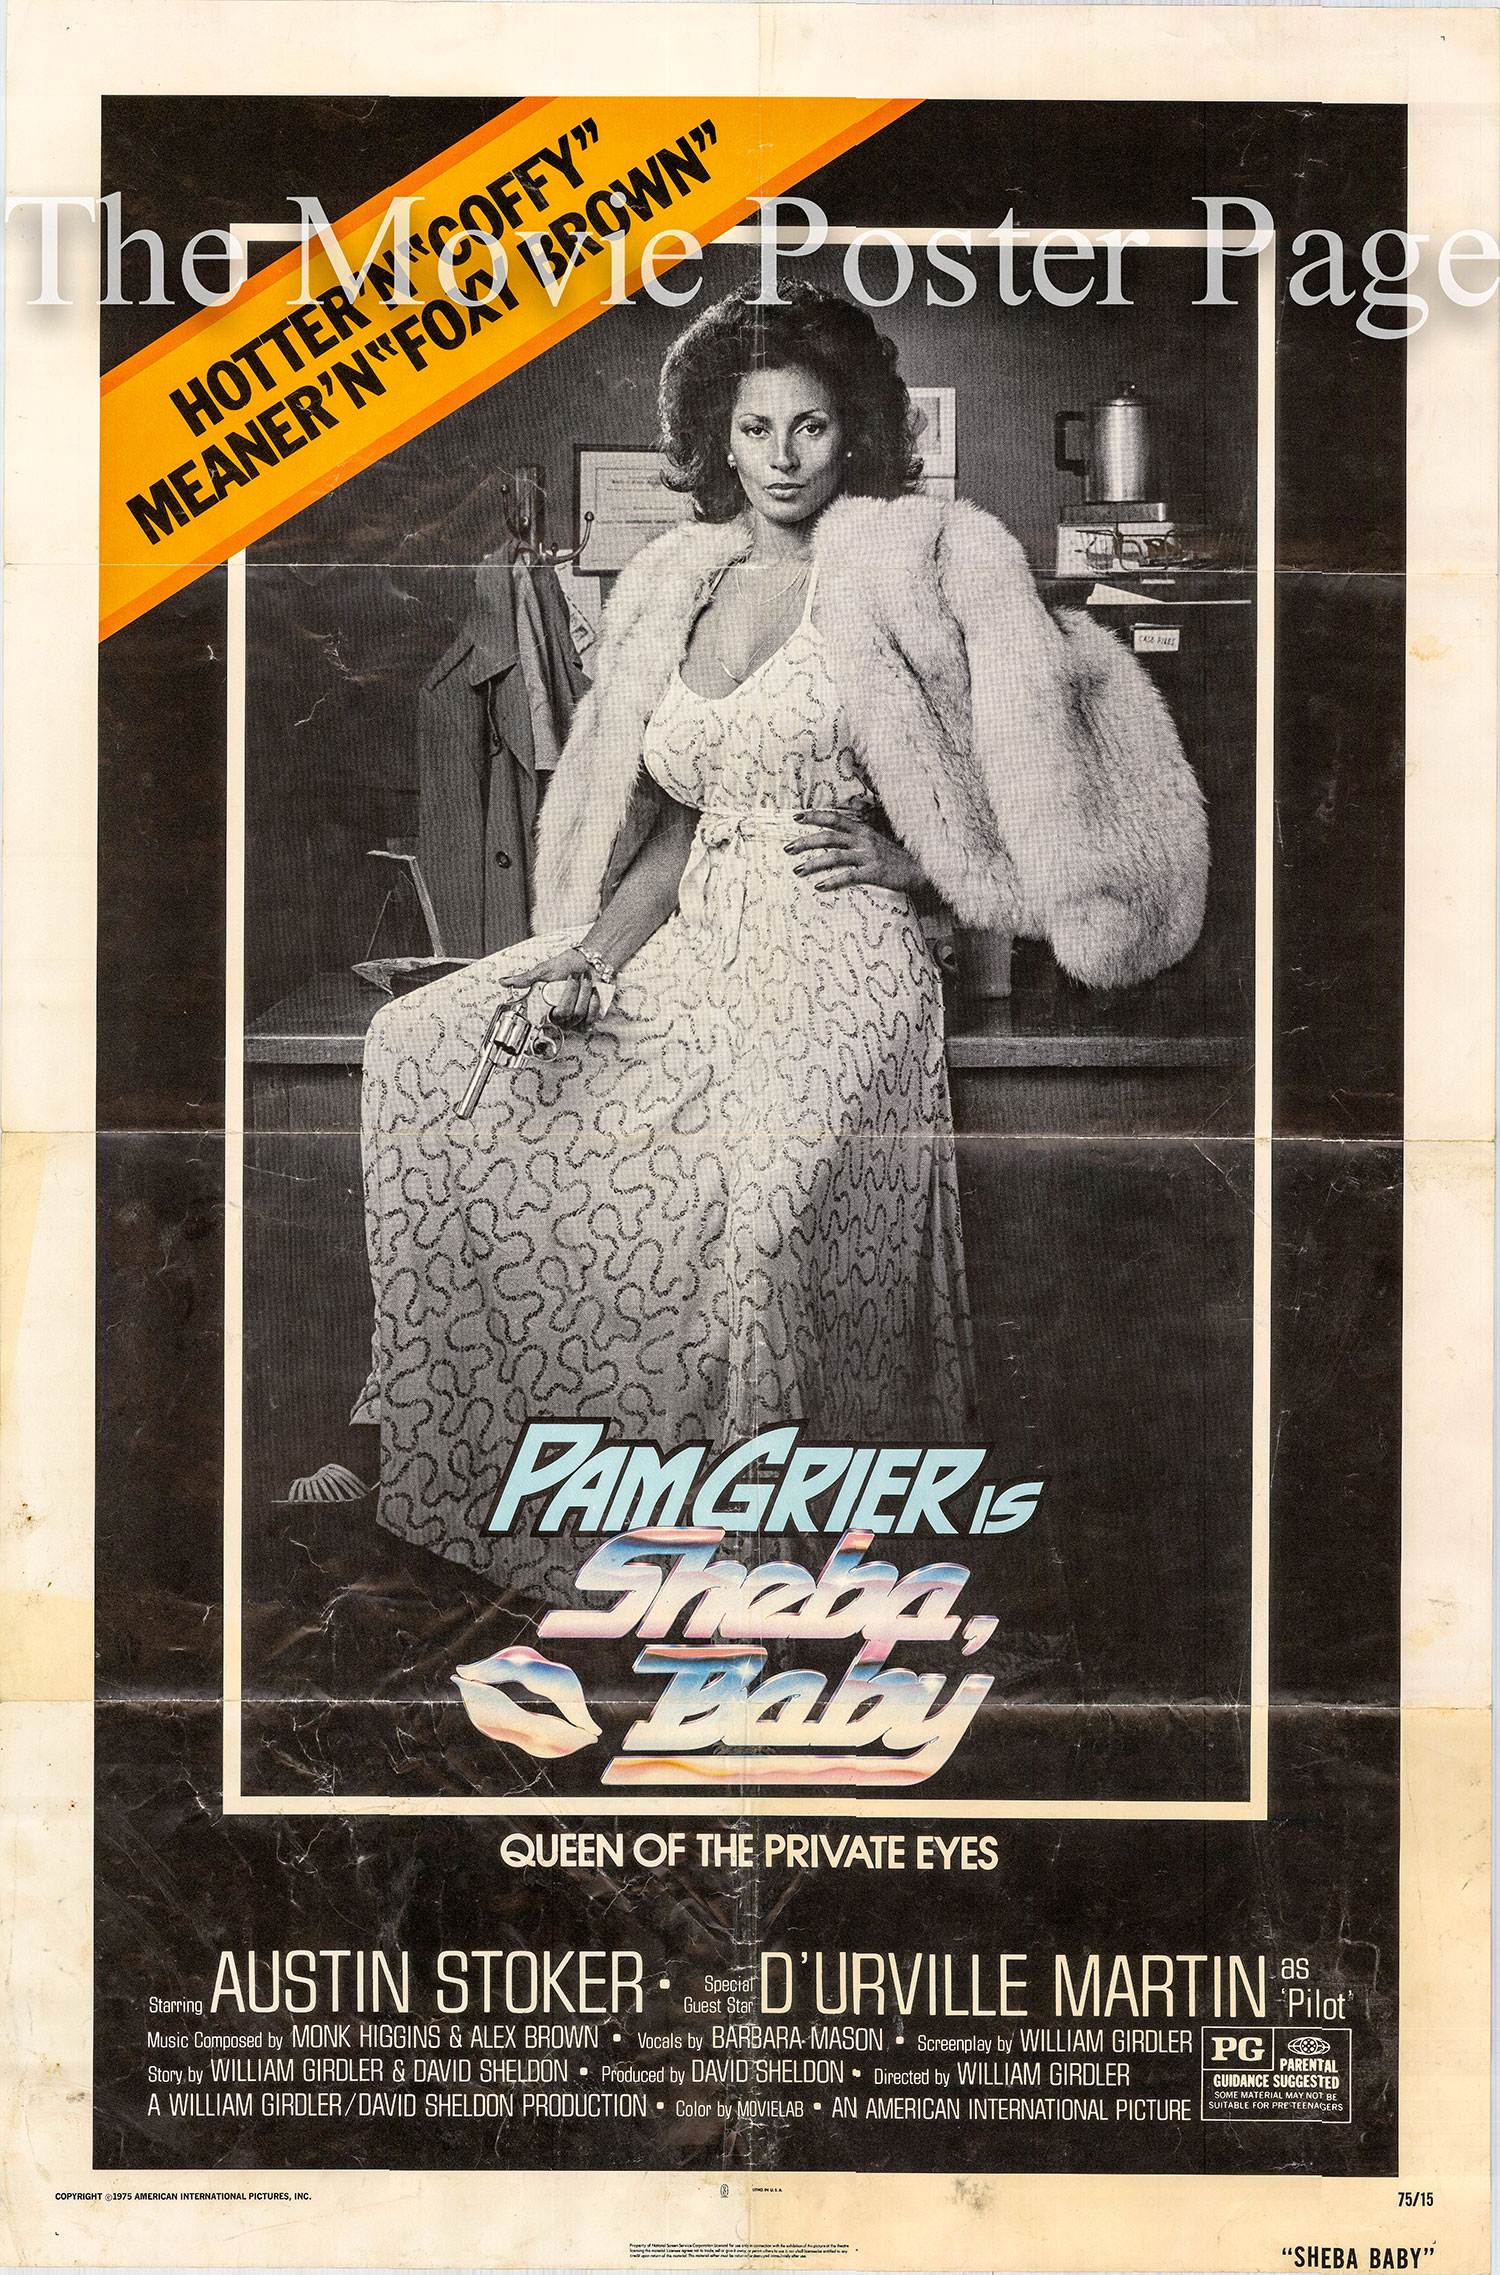 Pictured is a US one-sheet promotional poster for the 1975 William Girdler film Sheba Baby starring Pam Grier.